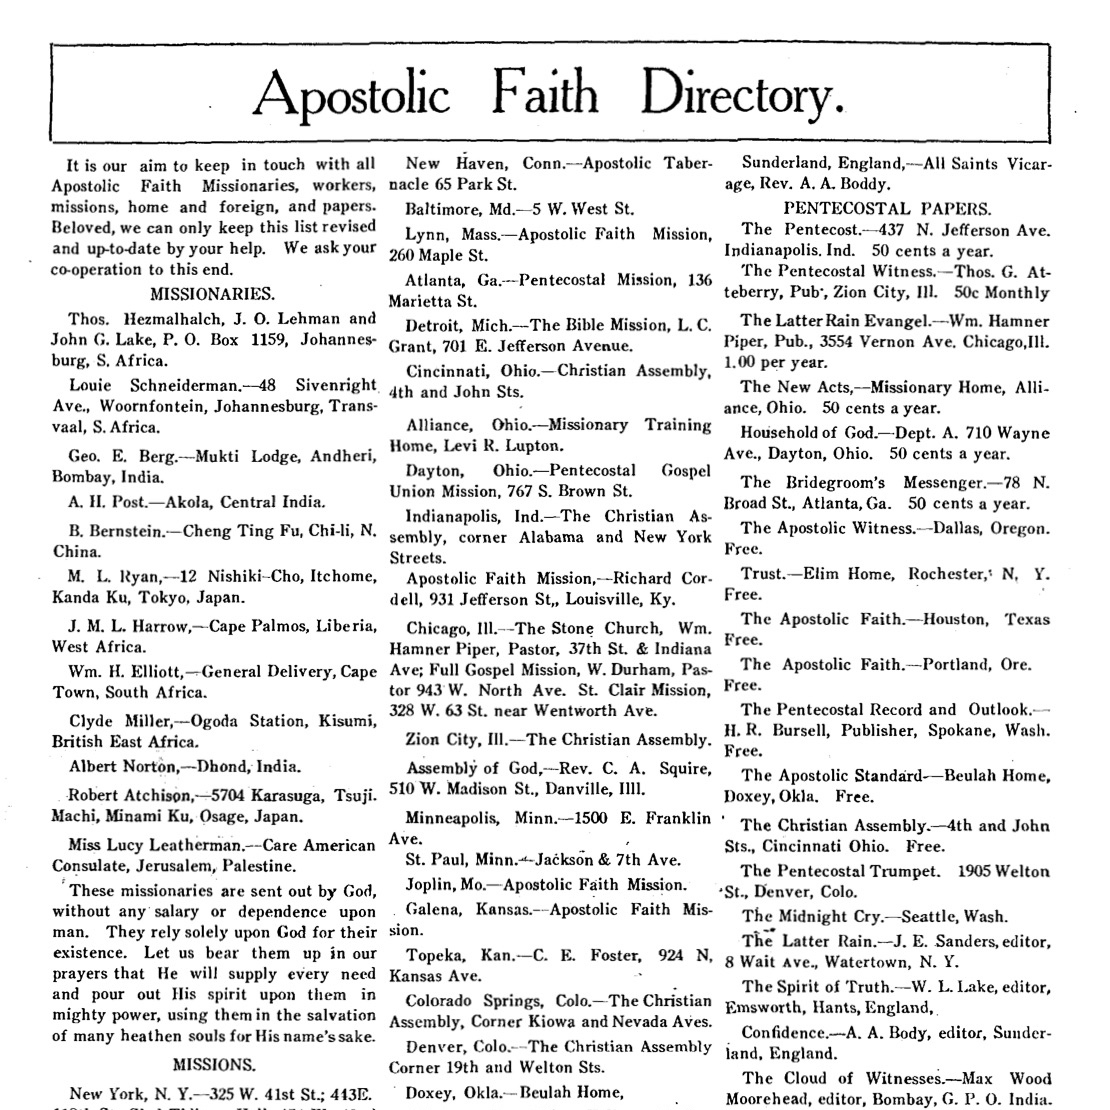 1908_12-directory-of-papers.jpg